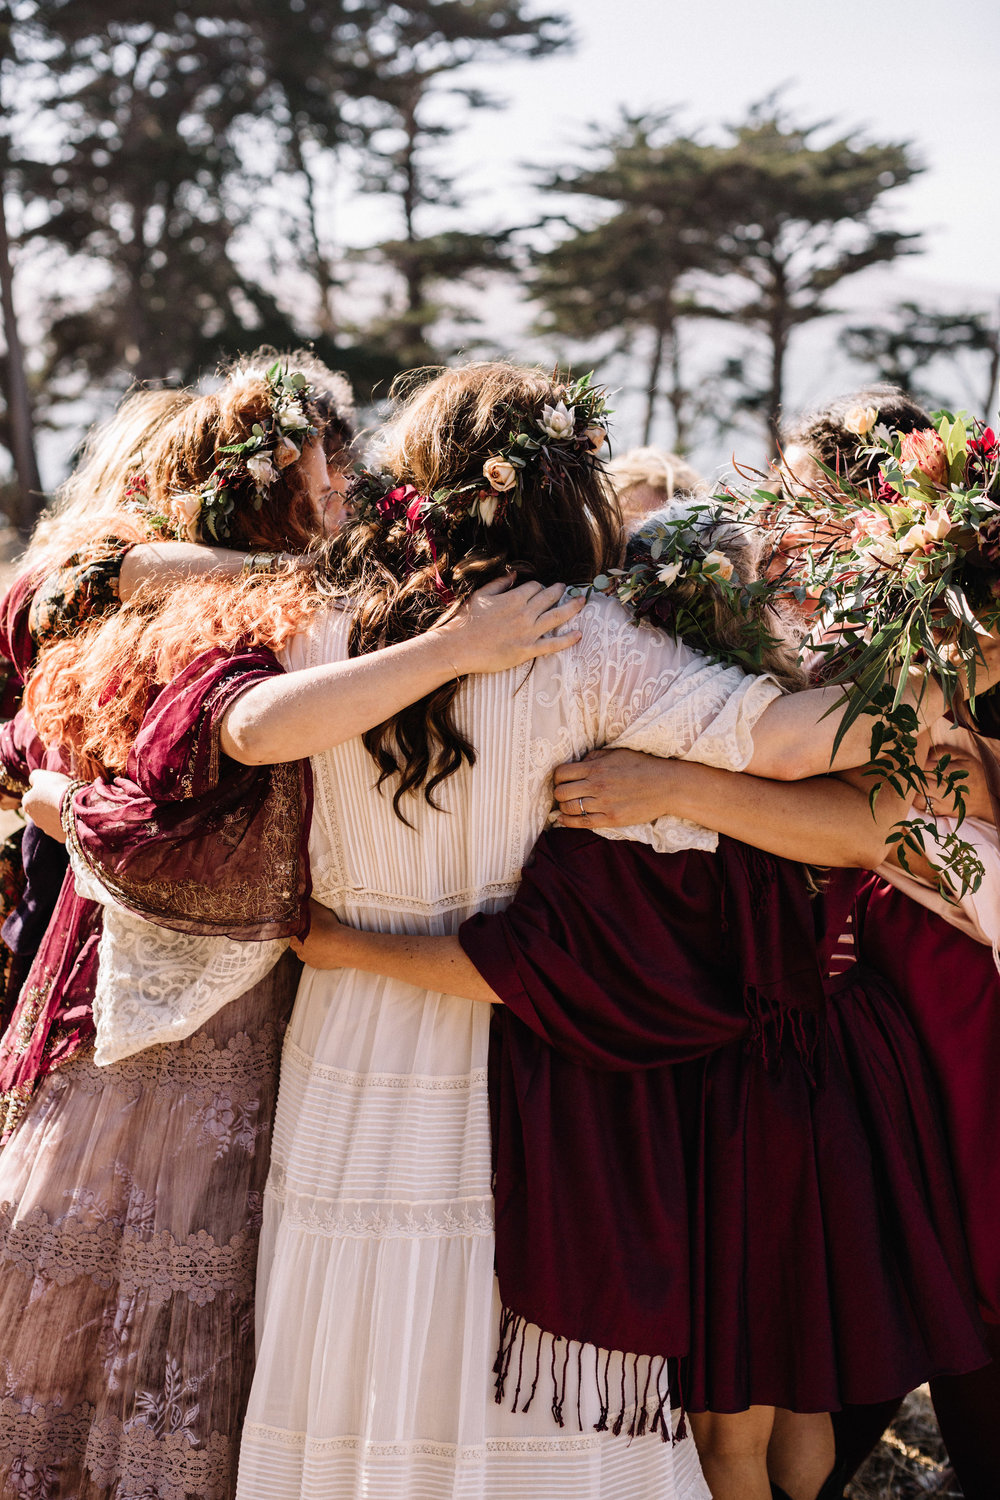 Photgraph by  Lucille Lawrence  at Straus Home Ranch of Erica and her ladies in waiting at her September wedding. More than ever, we're feeling the importance and power we have as women and our responsibility to support and stand up for each other. This one gives us all the feels. GIRL POWER.